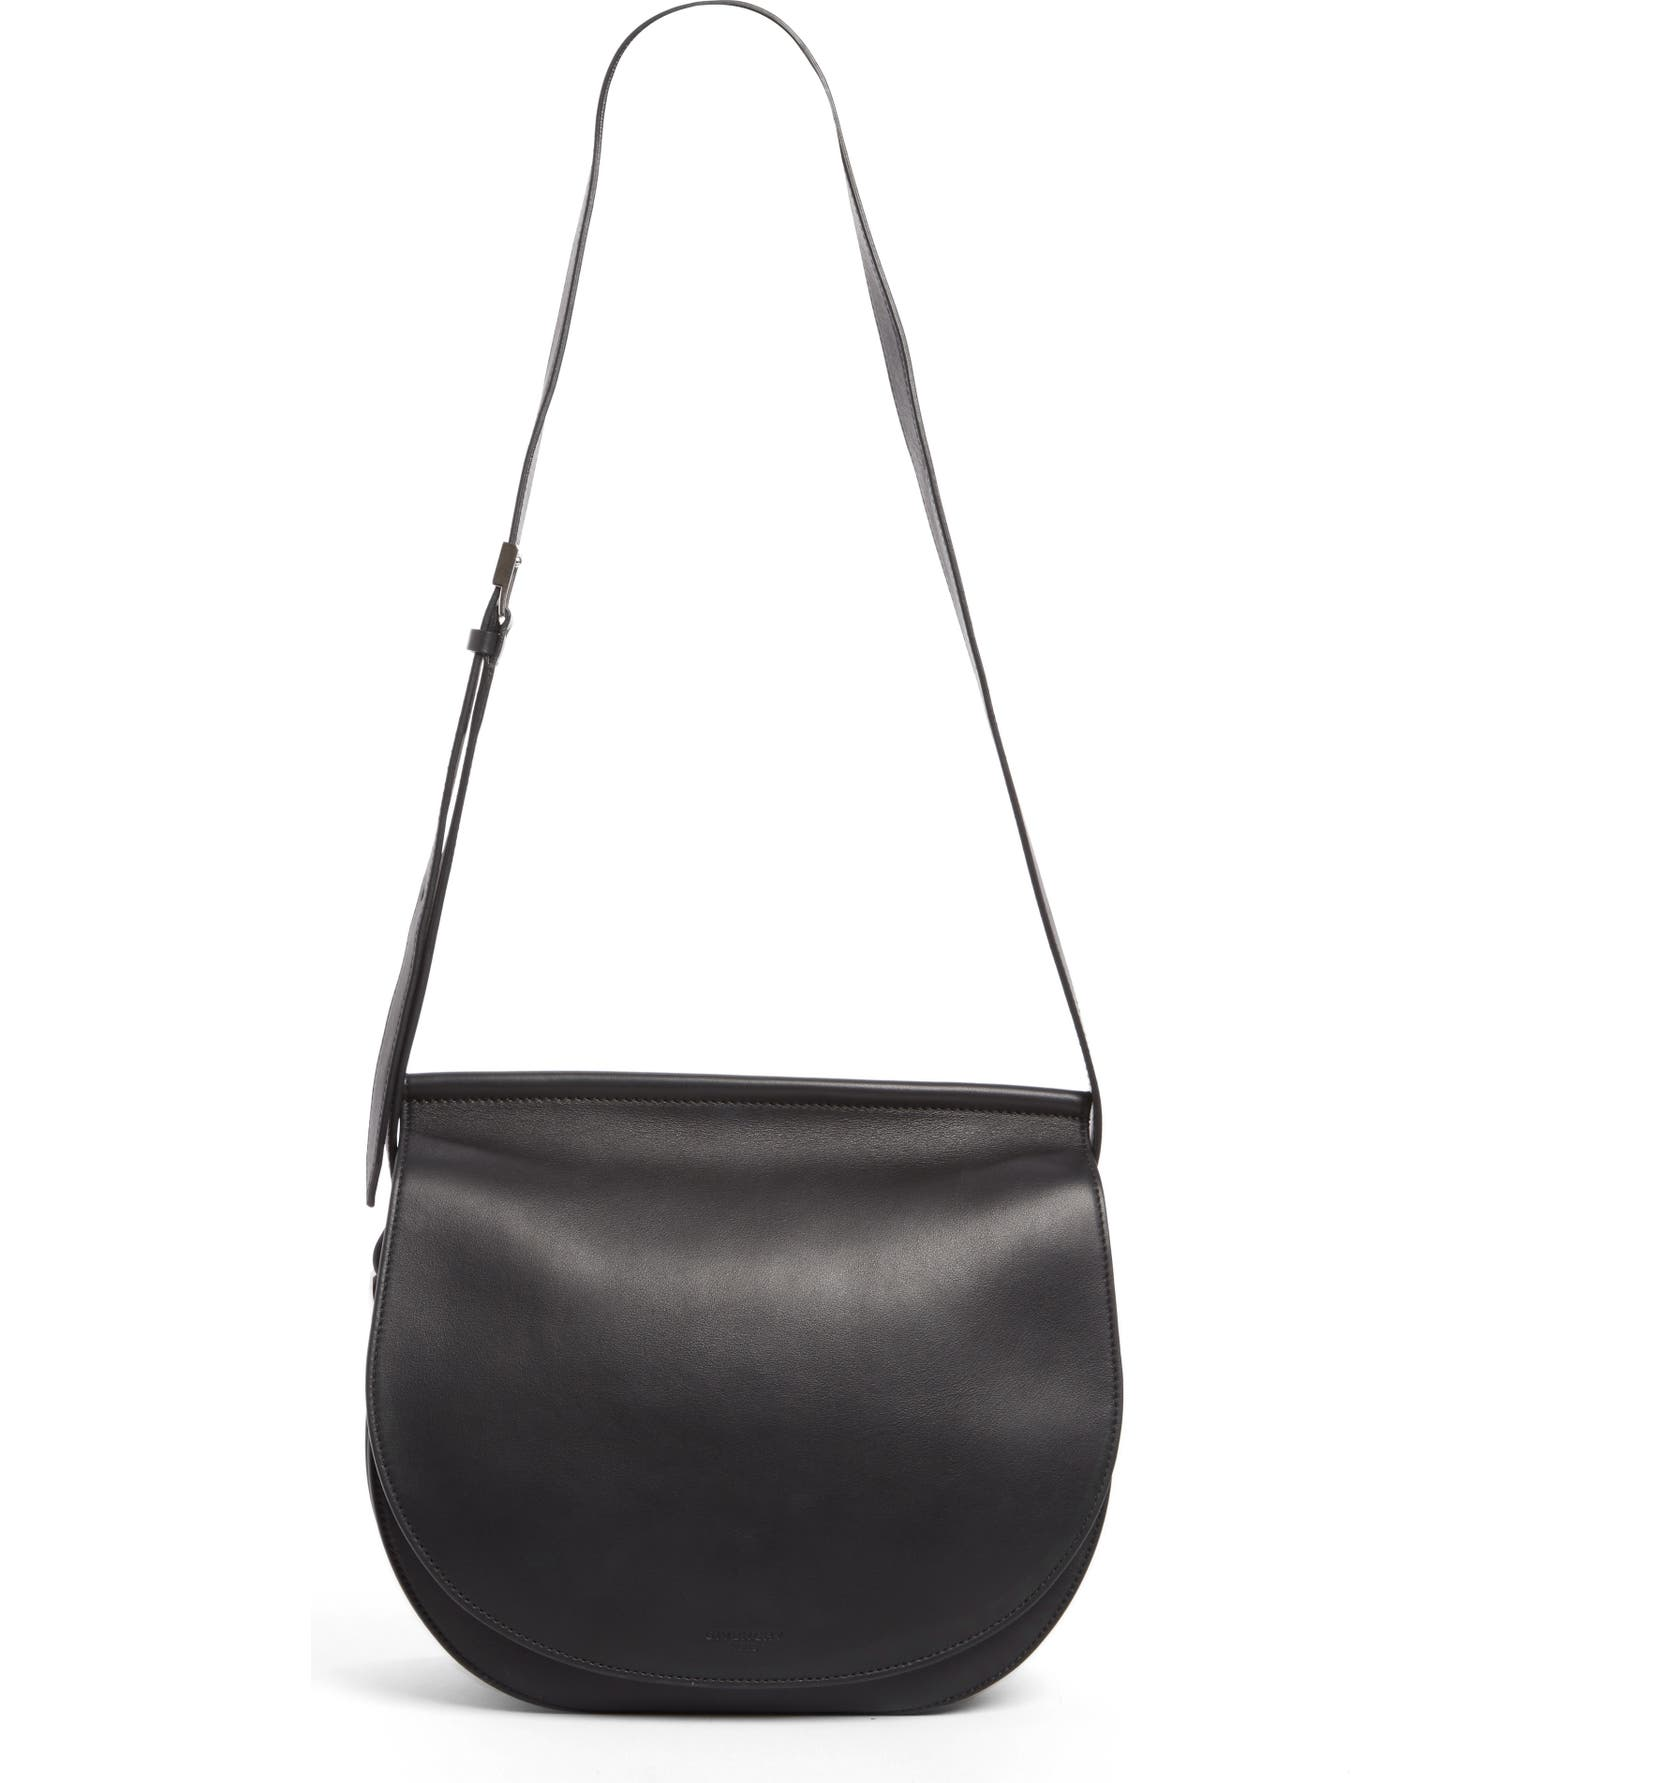 9958c311a0f Givenchy Infinity Calfskin Leather Saddle Bag | Nordstrom